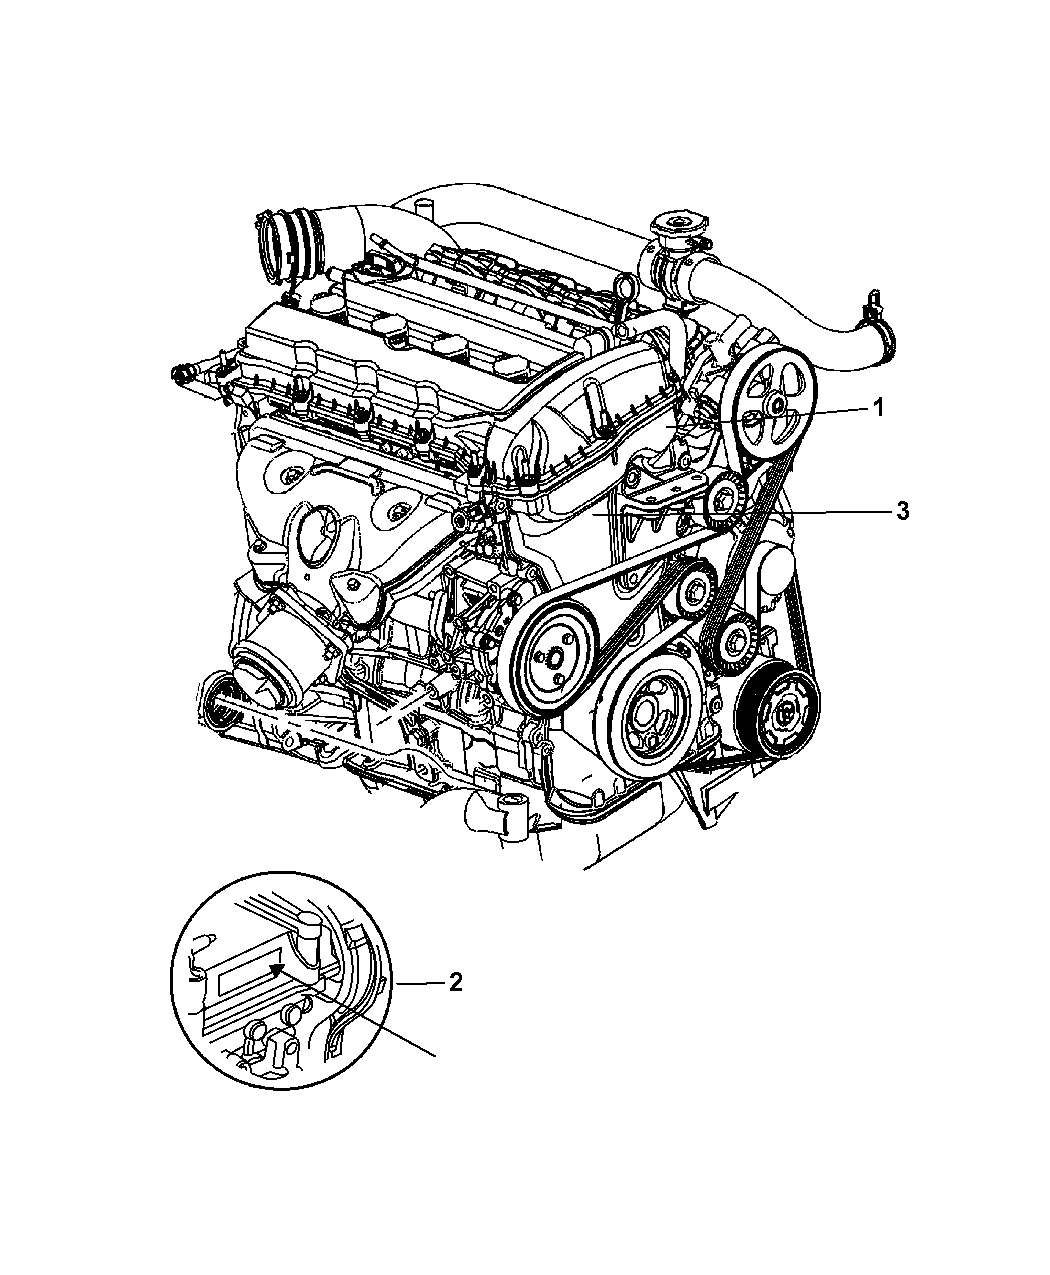 2011 chrysler 200 engine diagram wiring library 2011 jeep grand cherokee engine diagram 2011 chrysler 200 engine assembly & service thumbnail 1